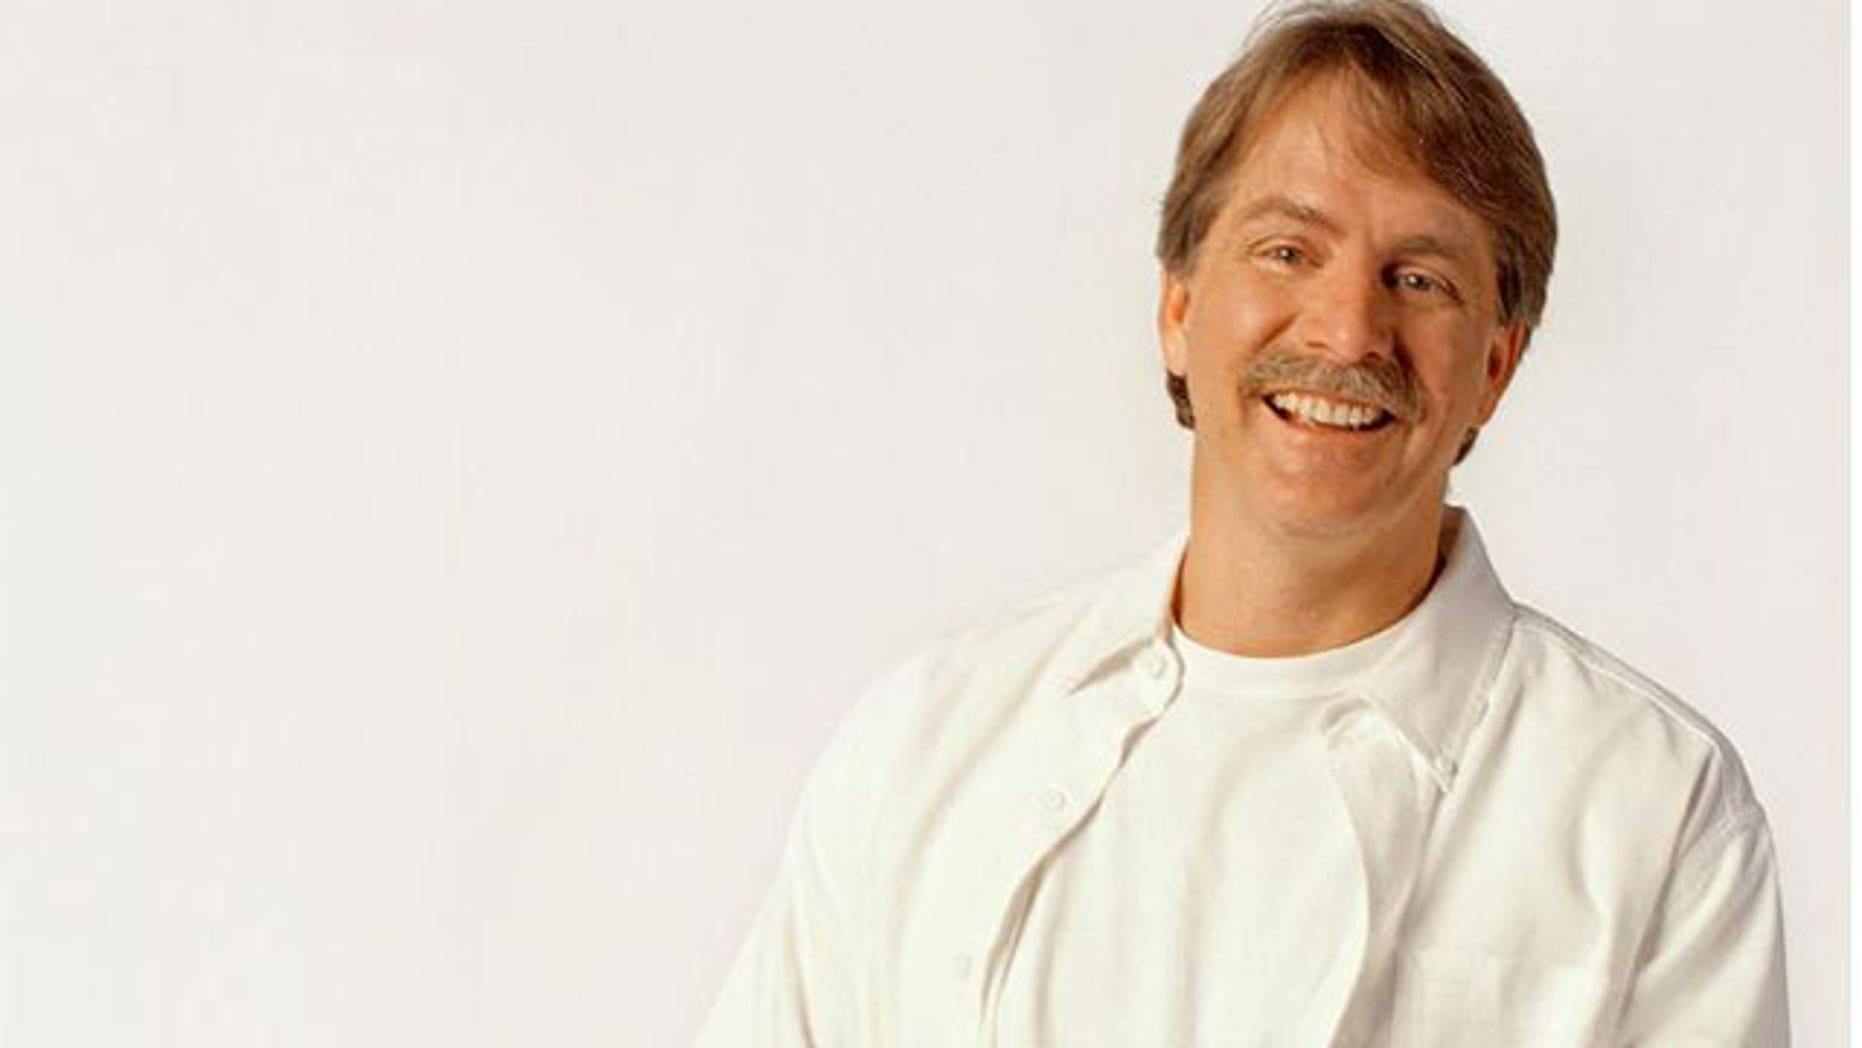 Jeff Foxworthy (Photo courtesy of Jeff Foxworthy)